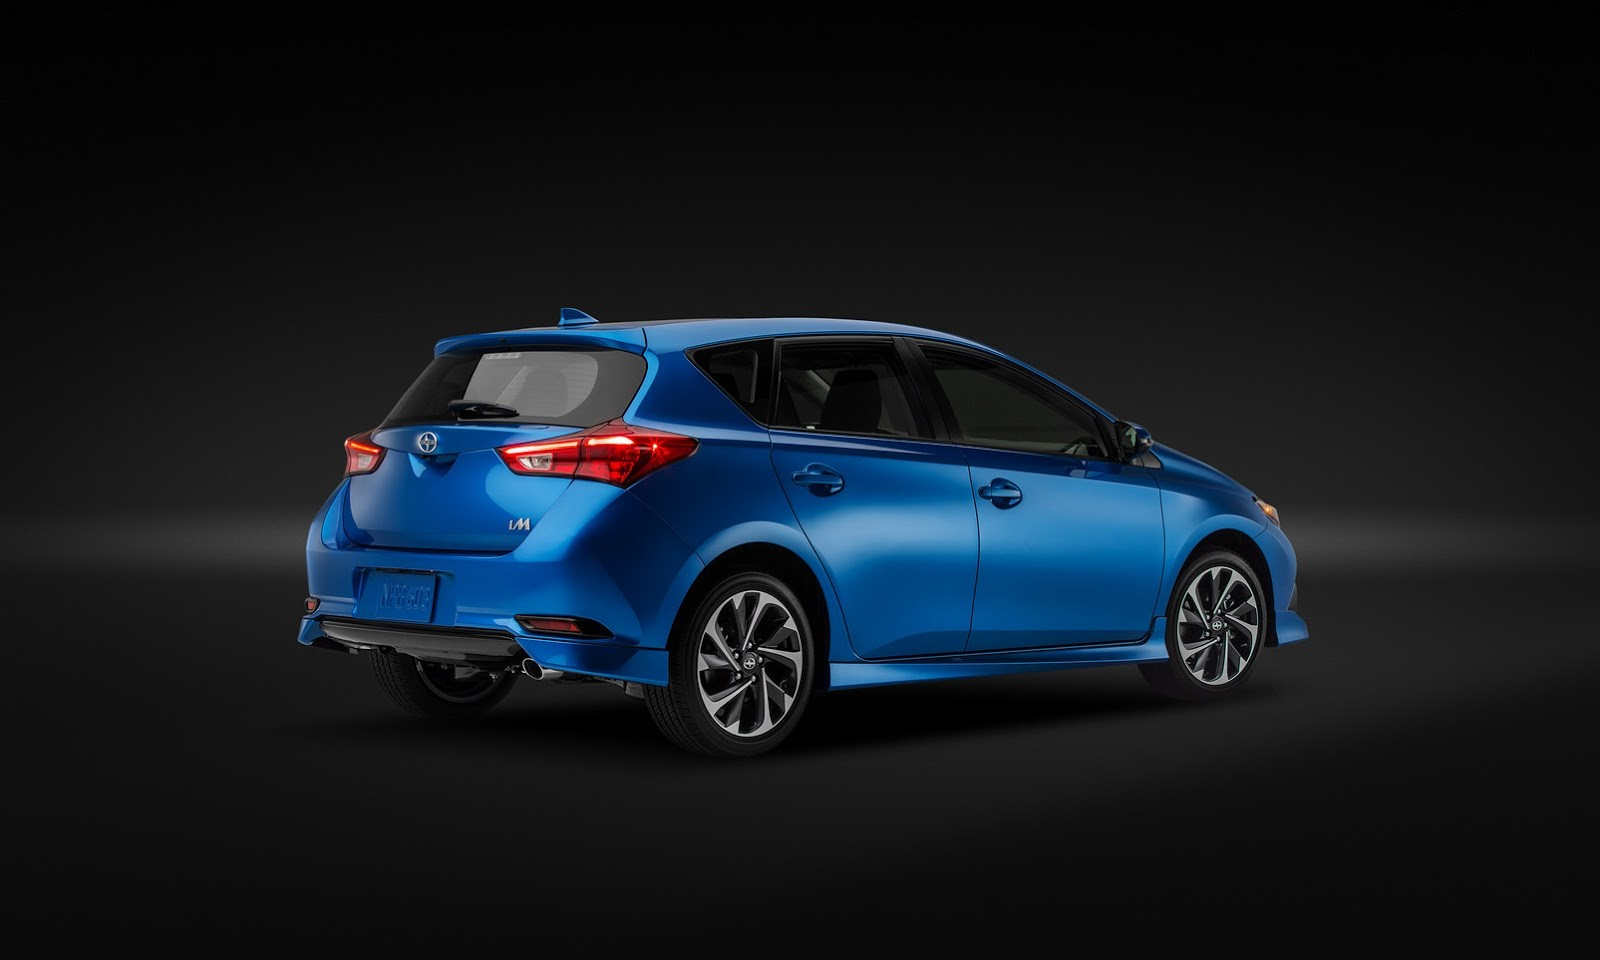 Toyota Corolla 2017 hatchback rear